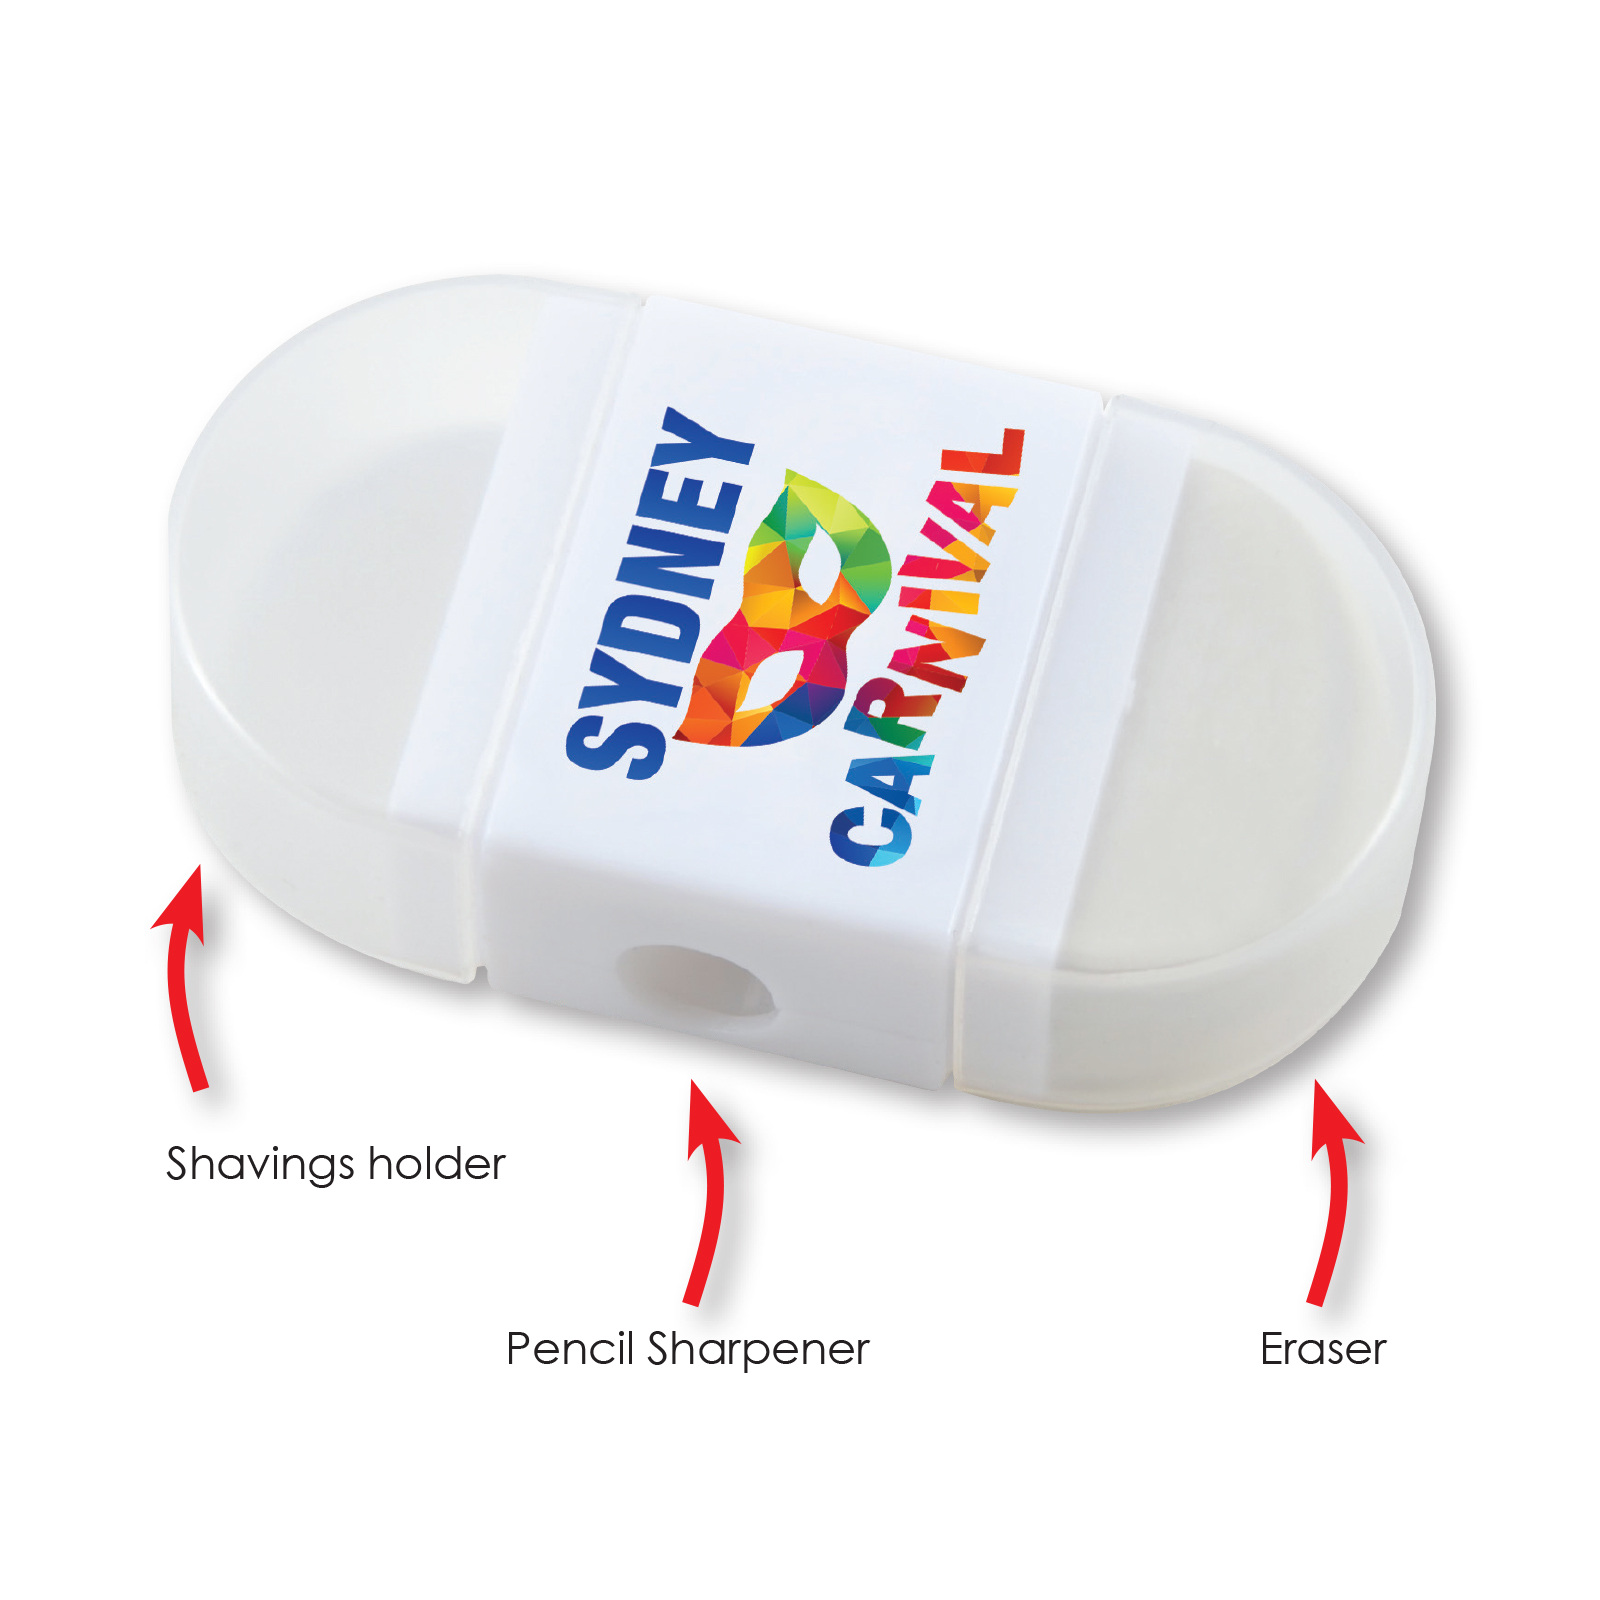 2 in 1 Pencil Sharpener / Eraser - Includes a 1 colour printed logo